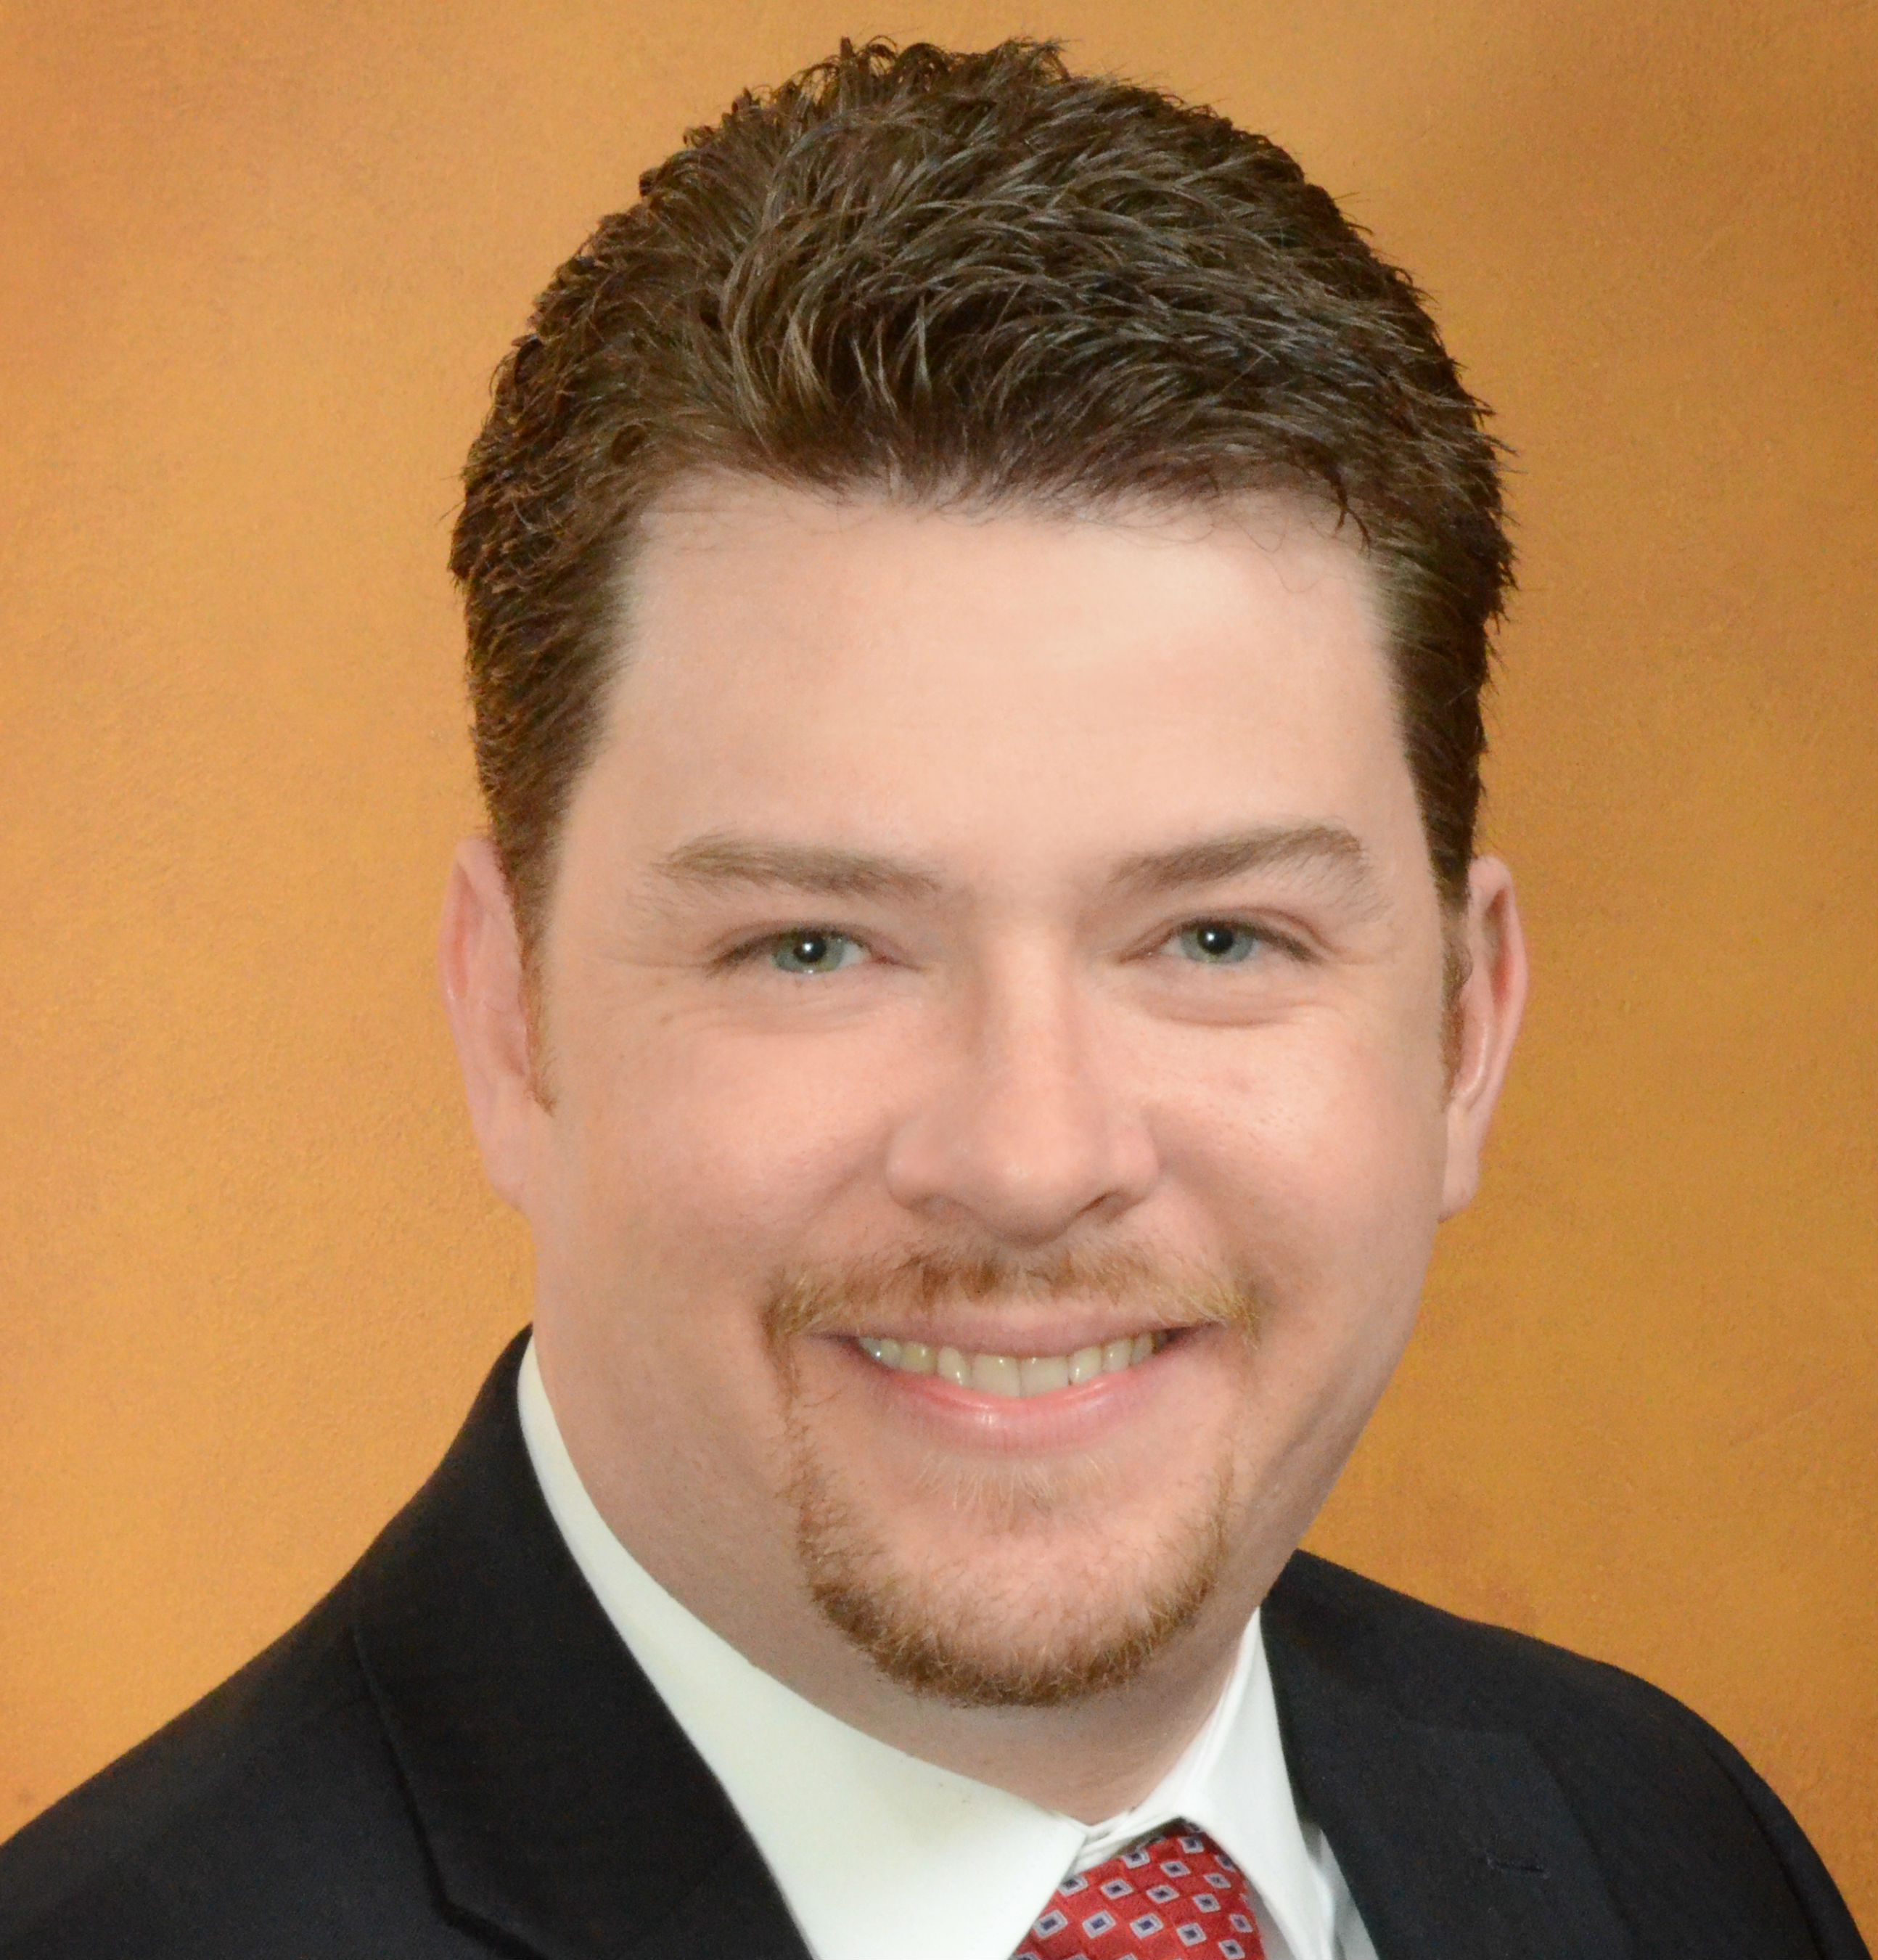 Chris Rondinelli, financial advisor Sewickley PA